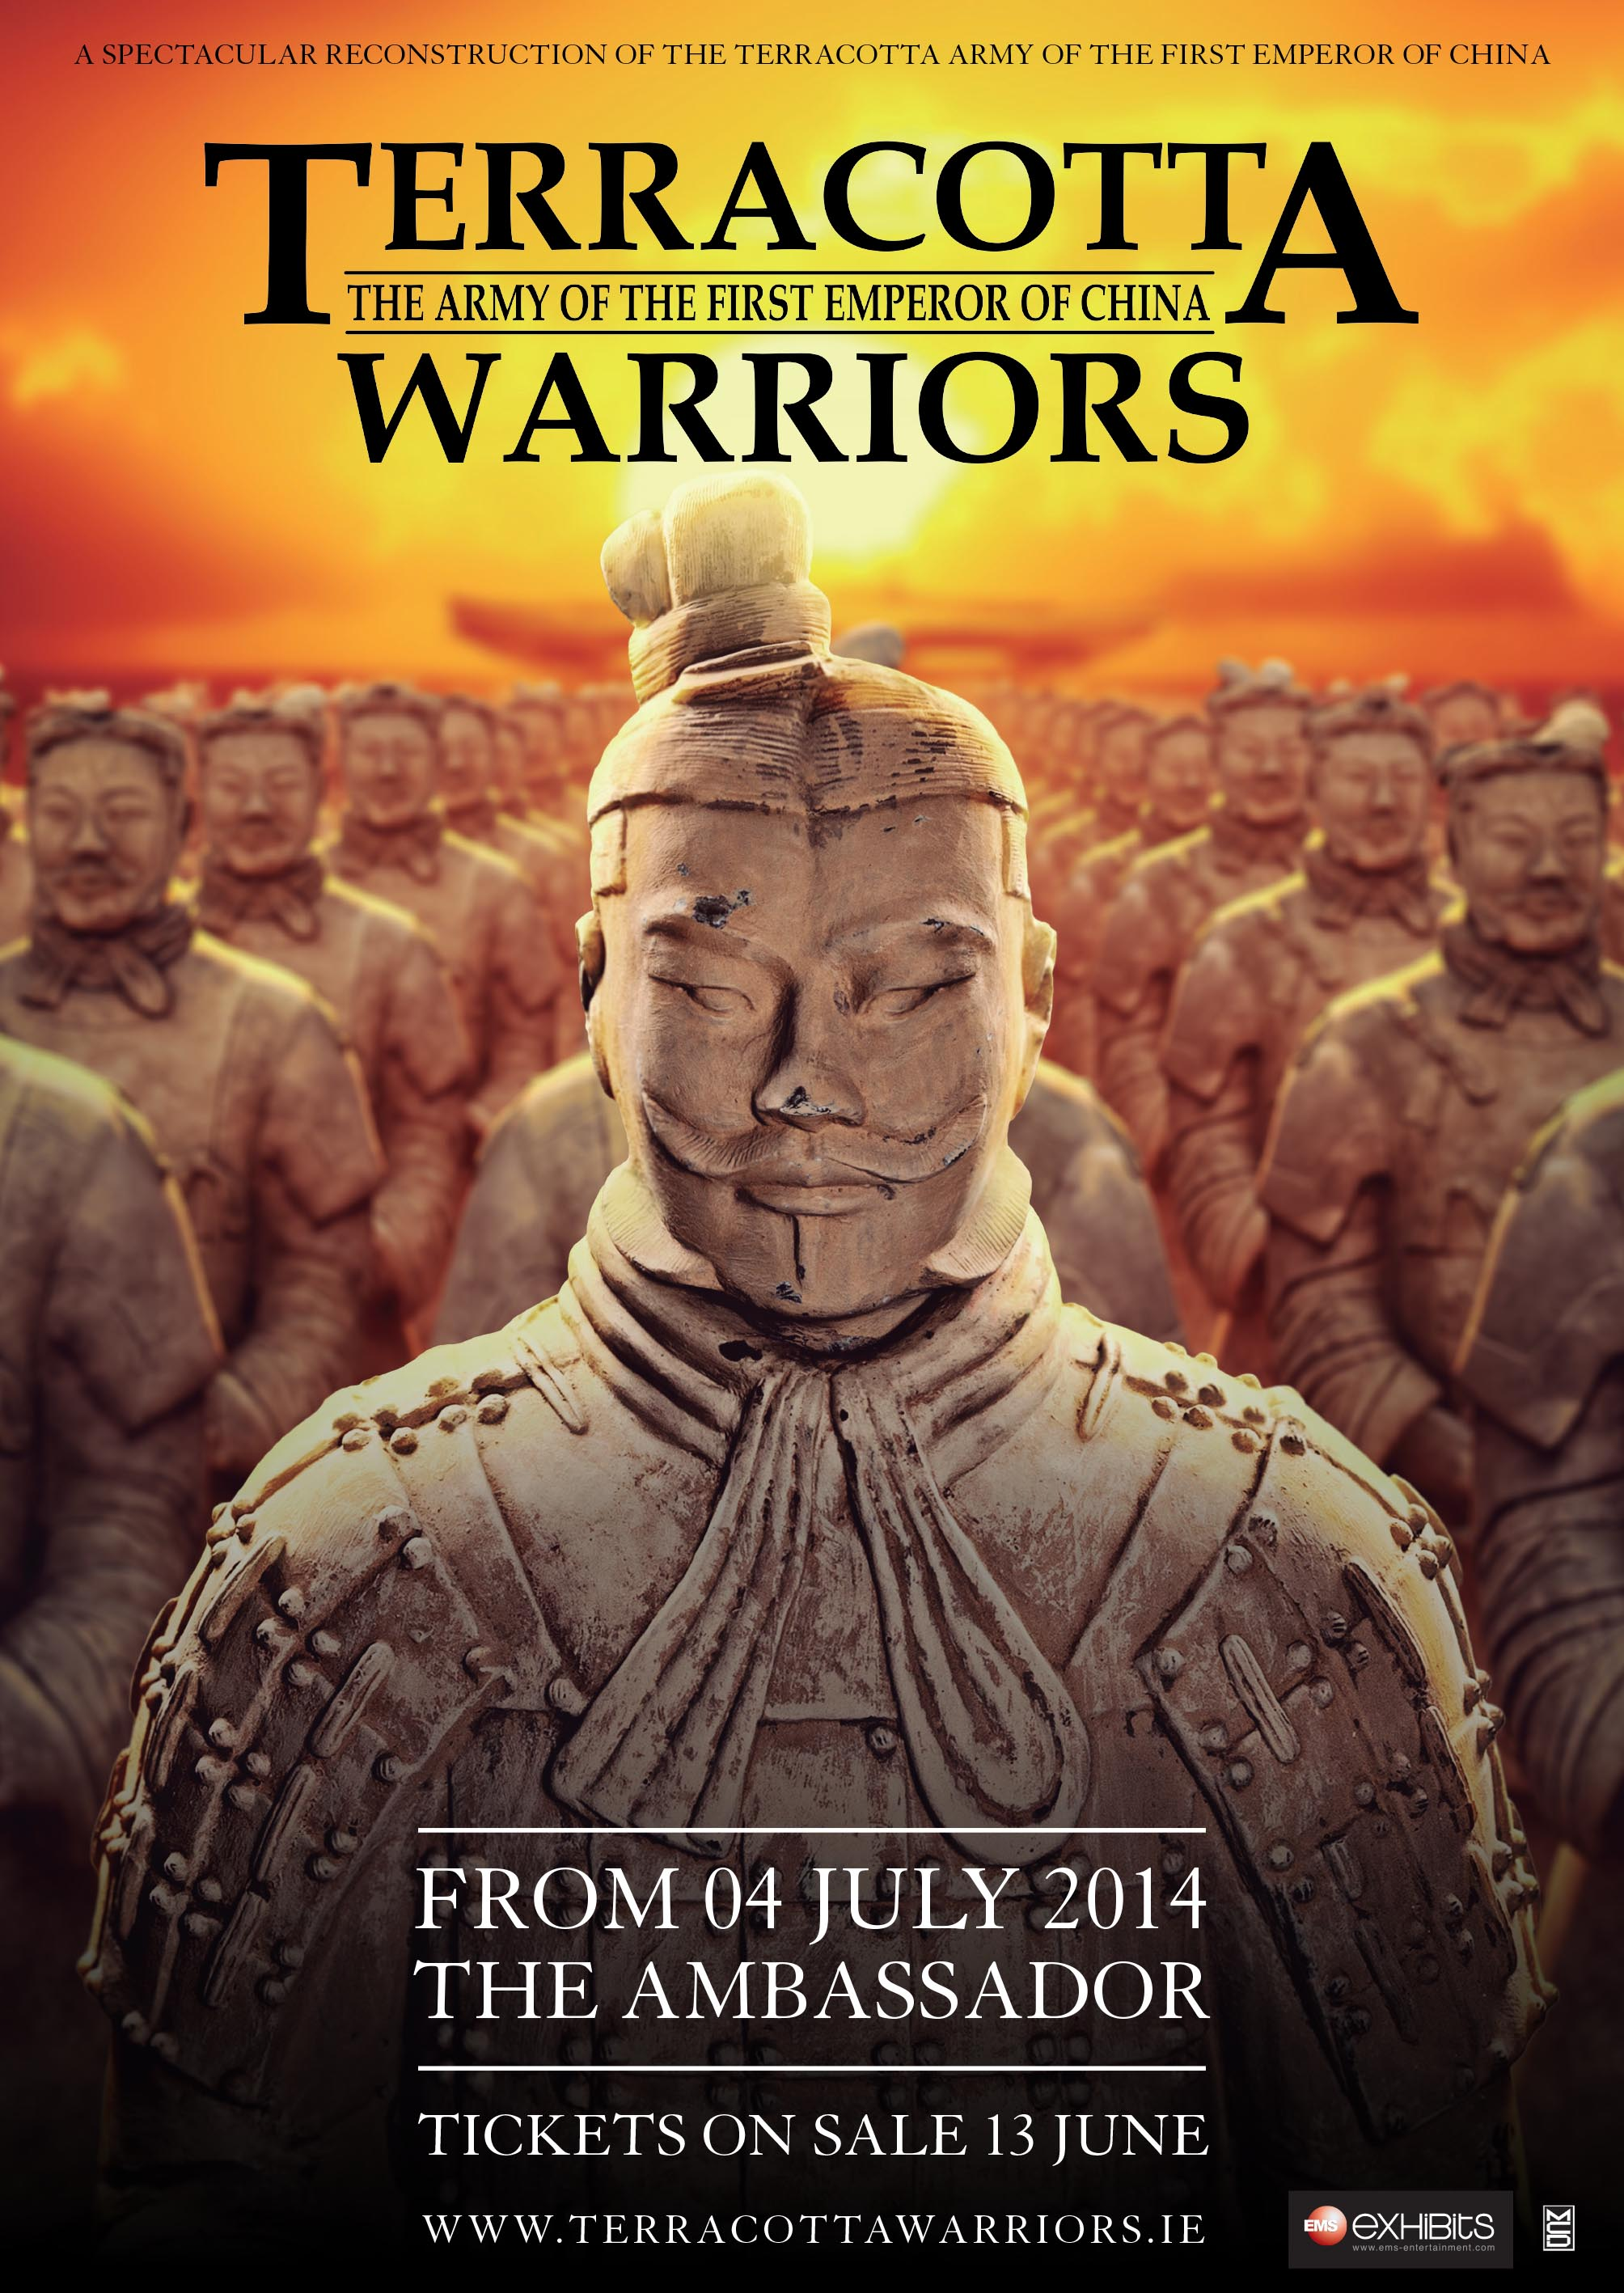 ������������� ����� ������������ ����� - The Terracotta Army